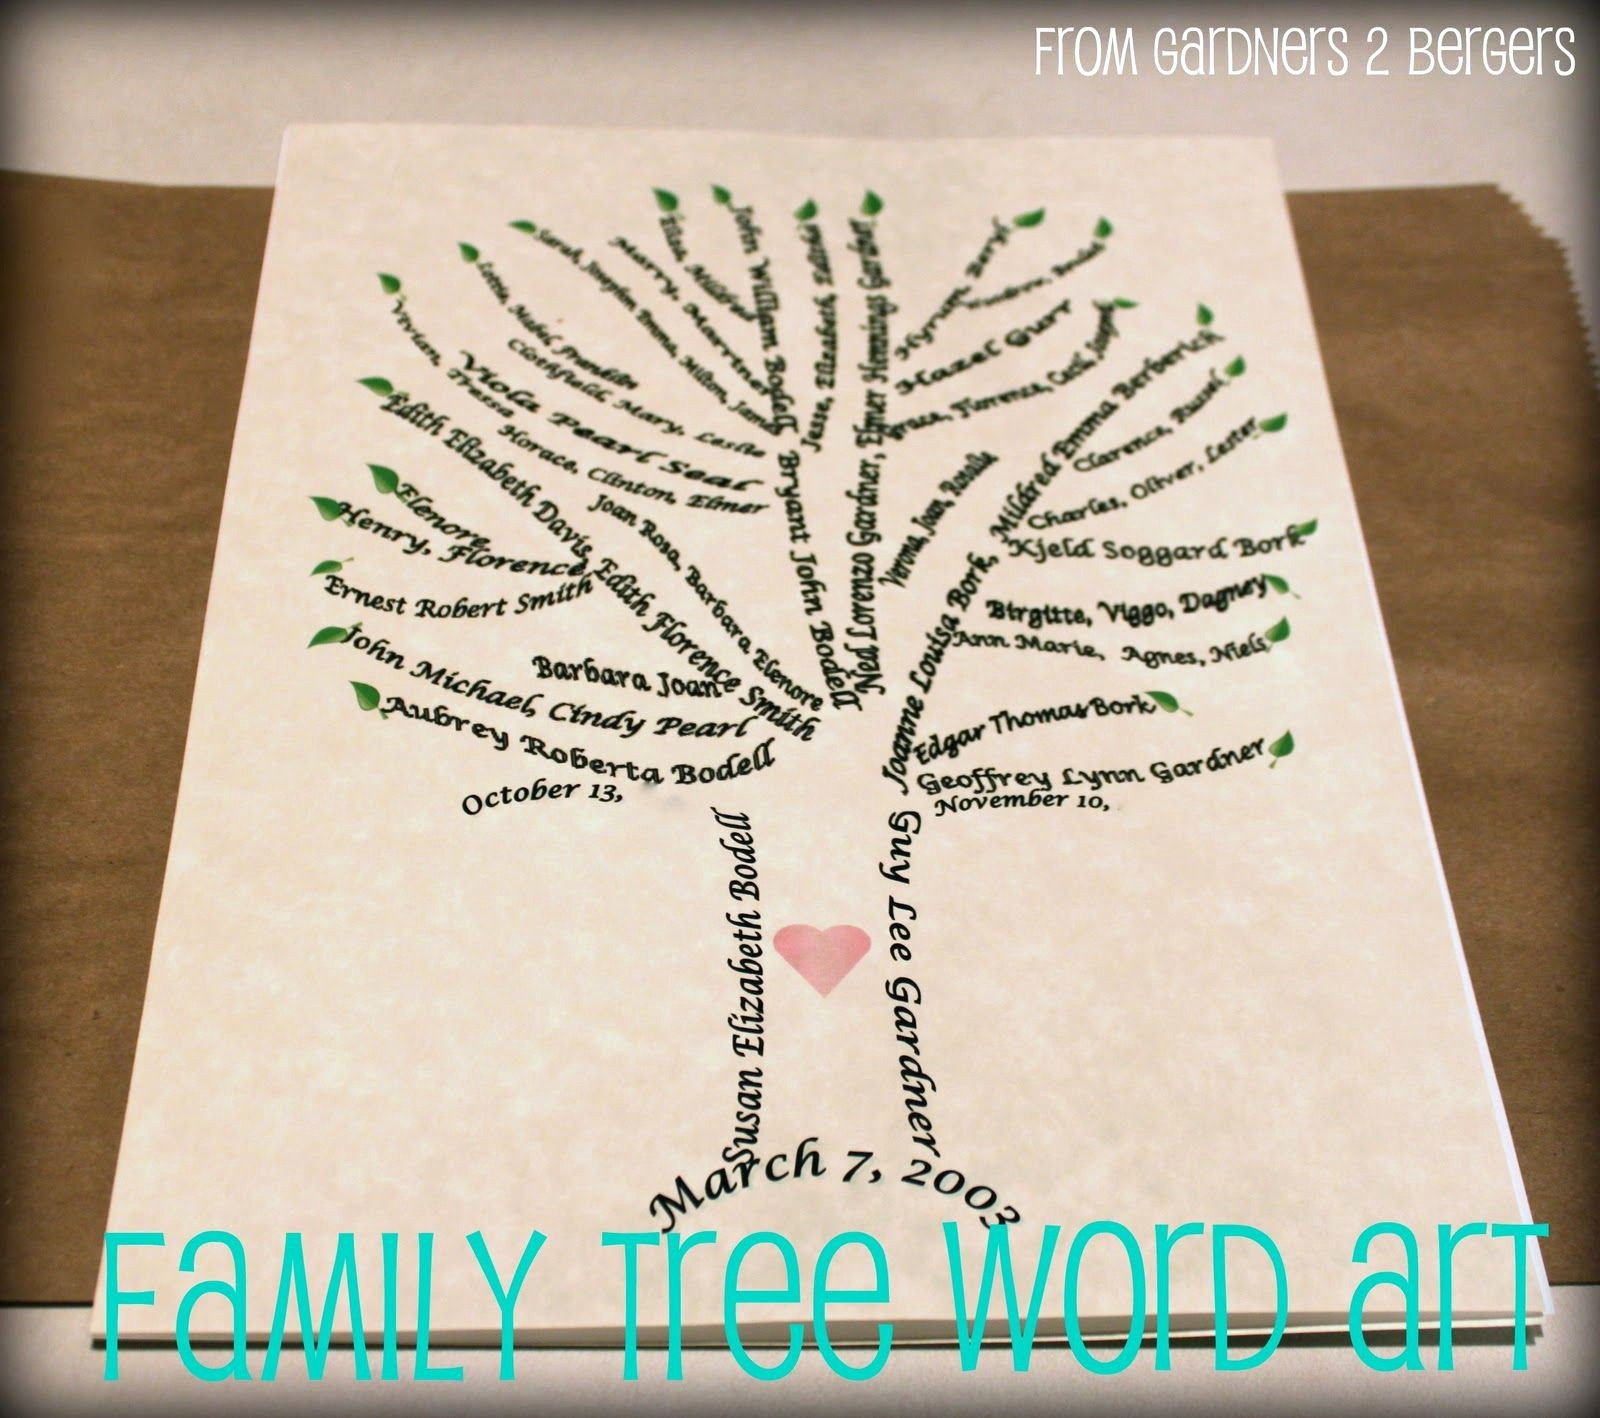 Make Family Tree In Word Awesome From Gardners 2 Bergers Family Tree Word Art [tutorial